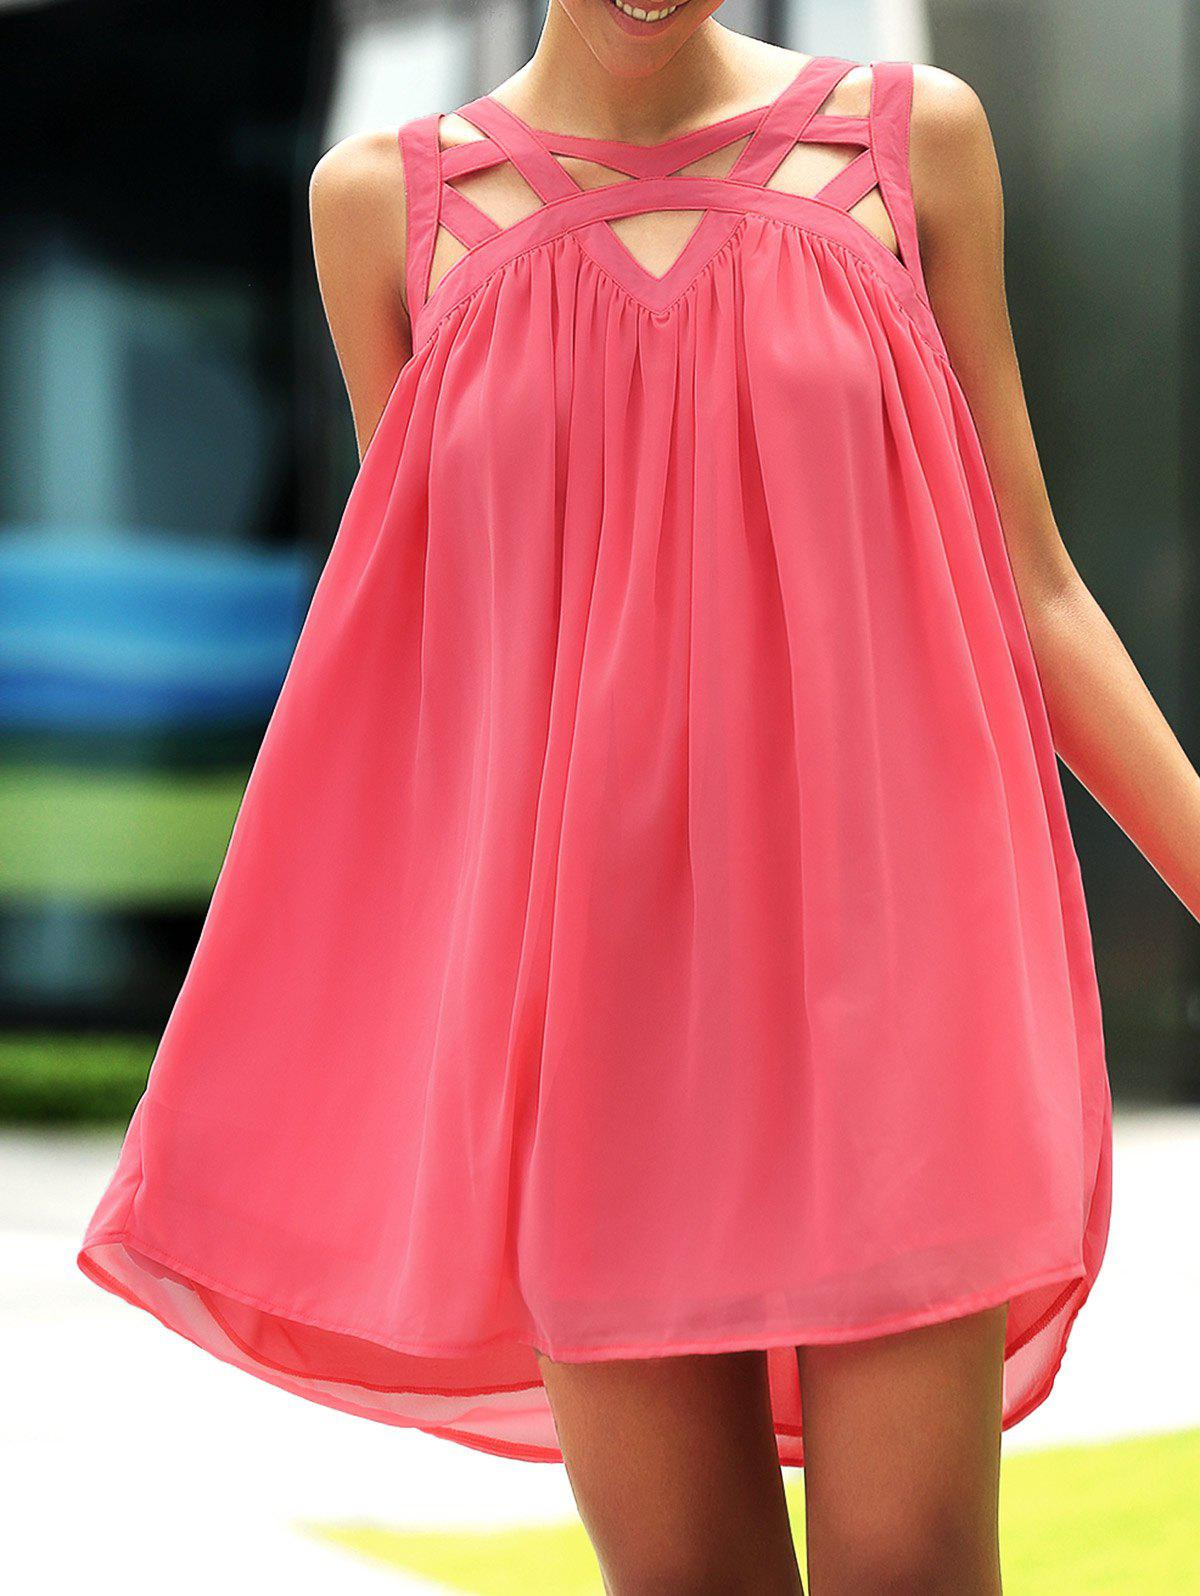 Stylish Round Neck Sleeveless Hollow Out Design Summer Dress For Women - WATERMELON RED S